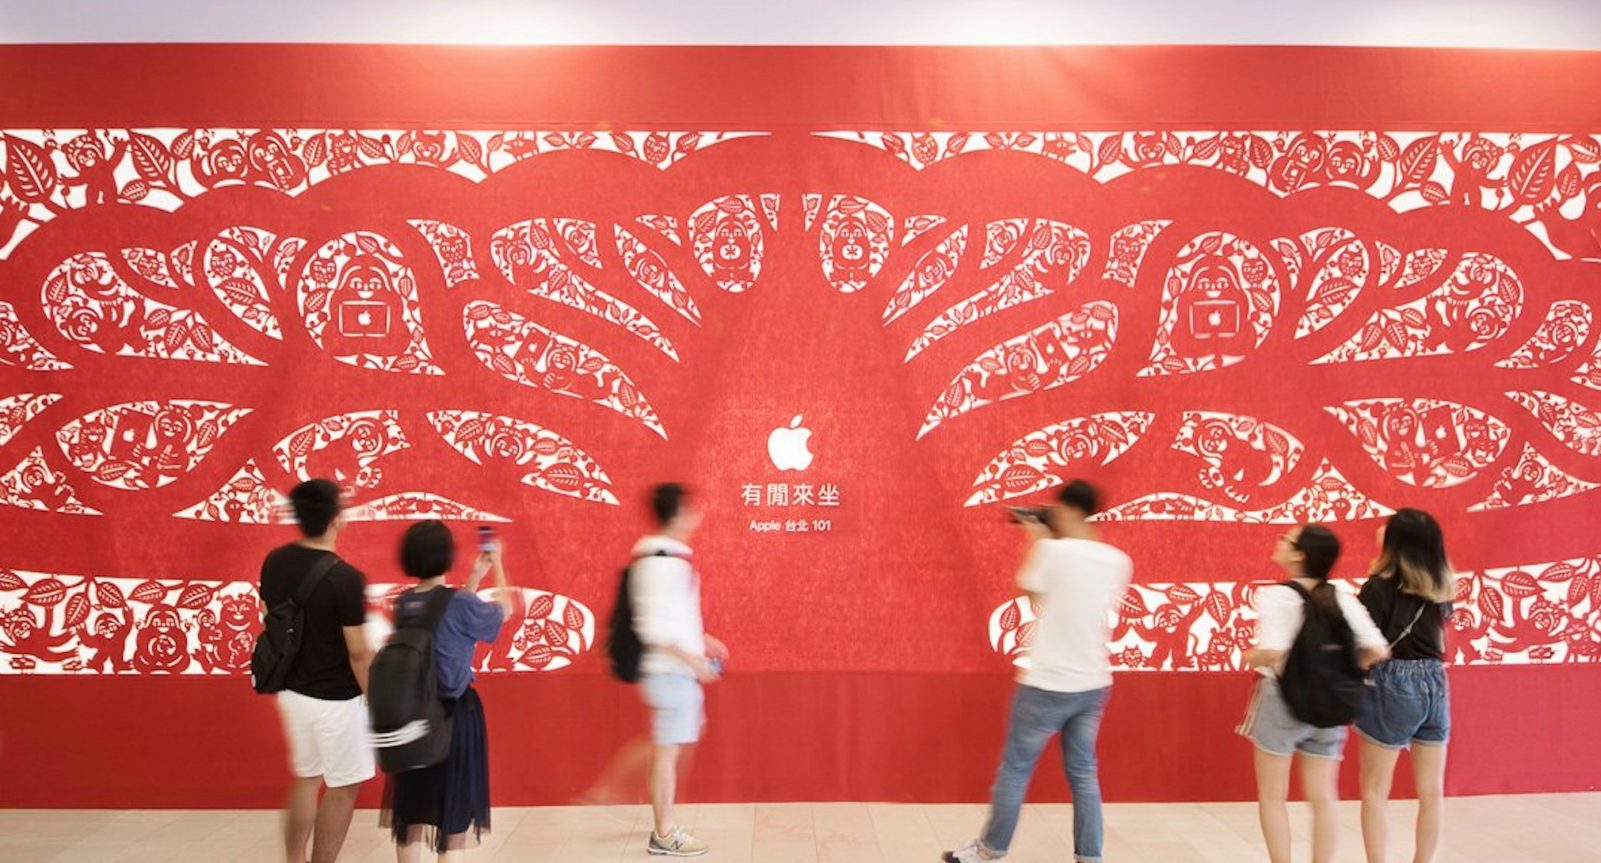 Apple Announces Its First Taiwan Retail Store,Located in Taipei 101 Skyscraper